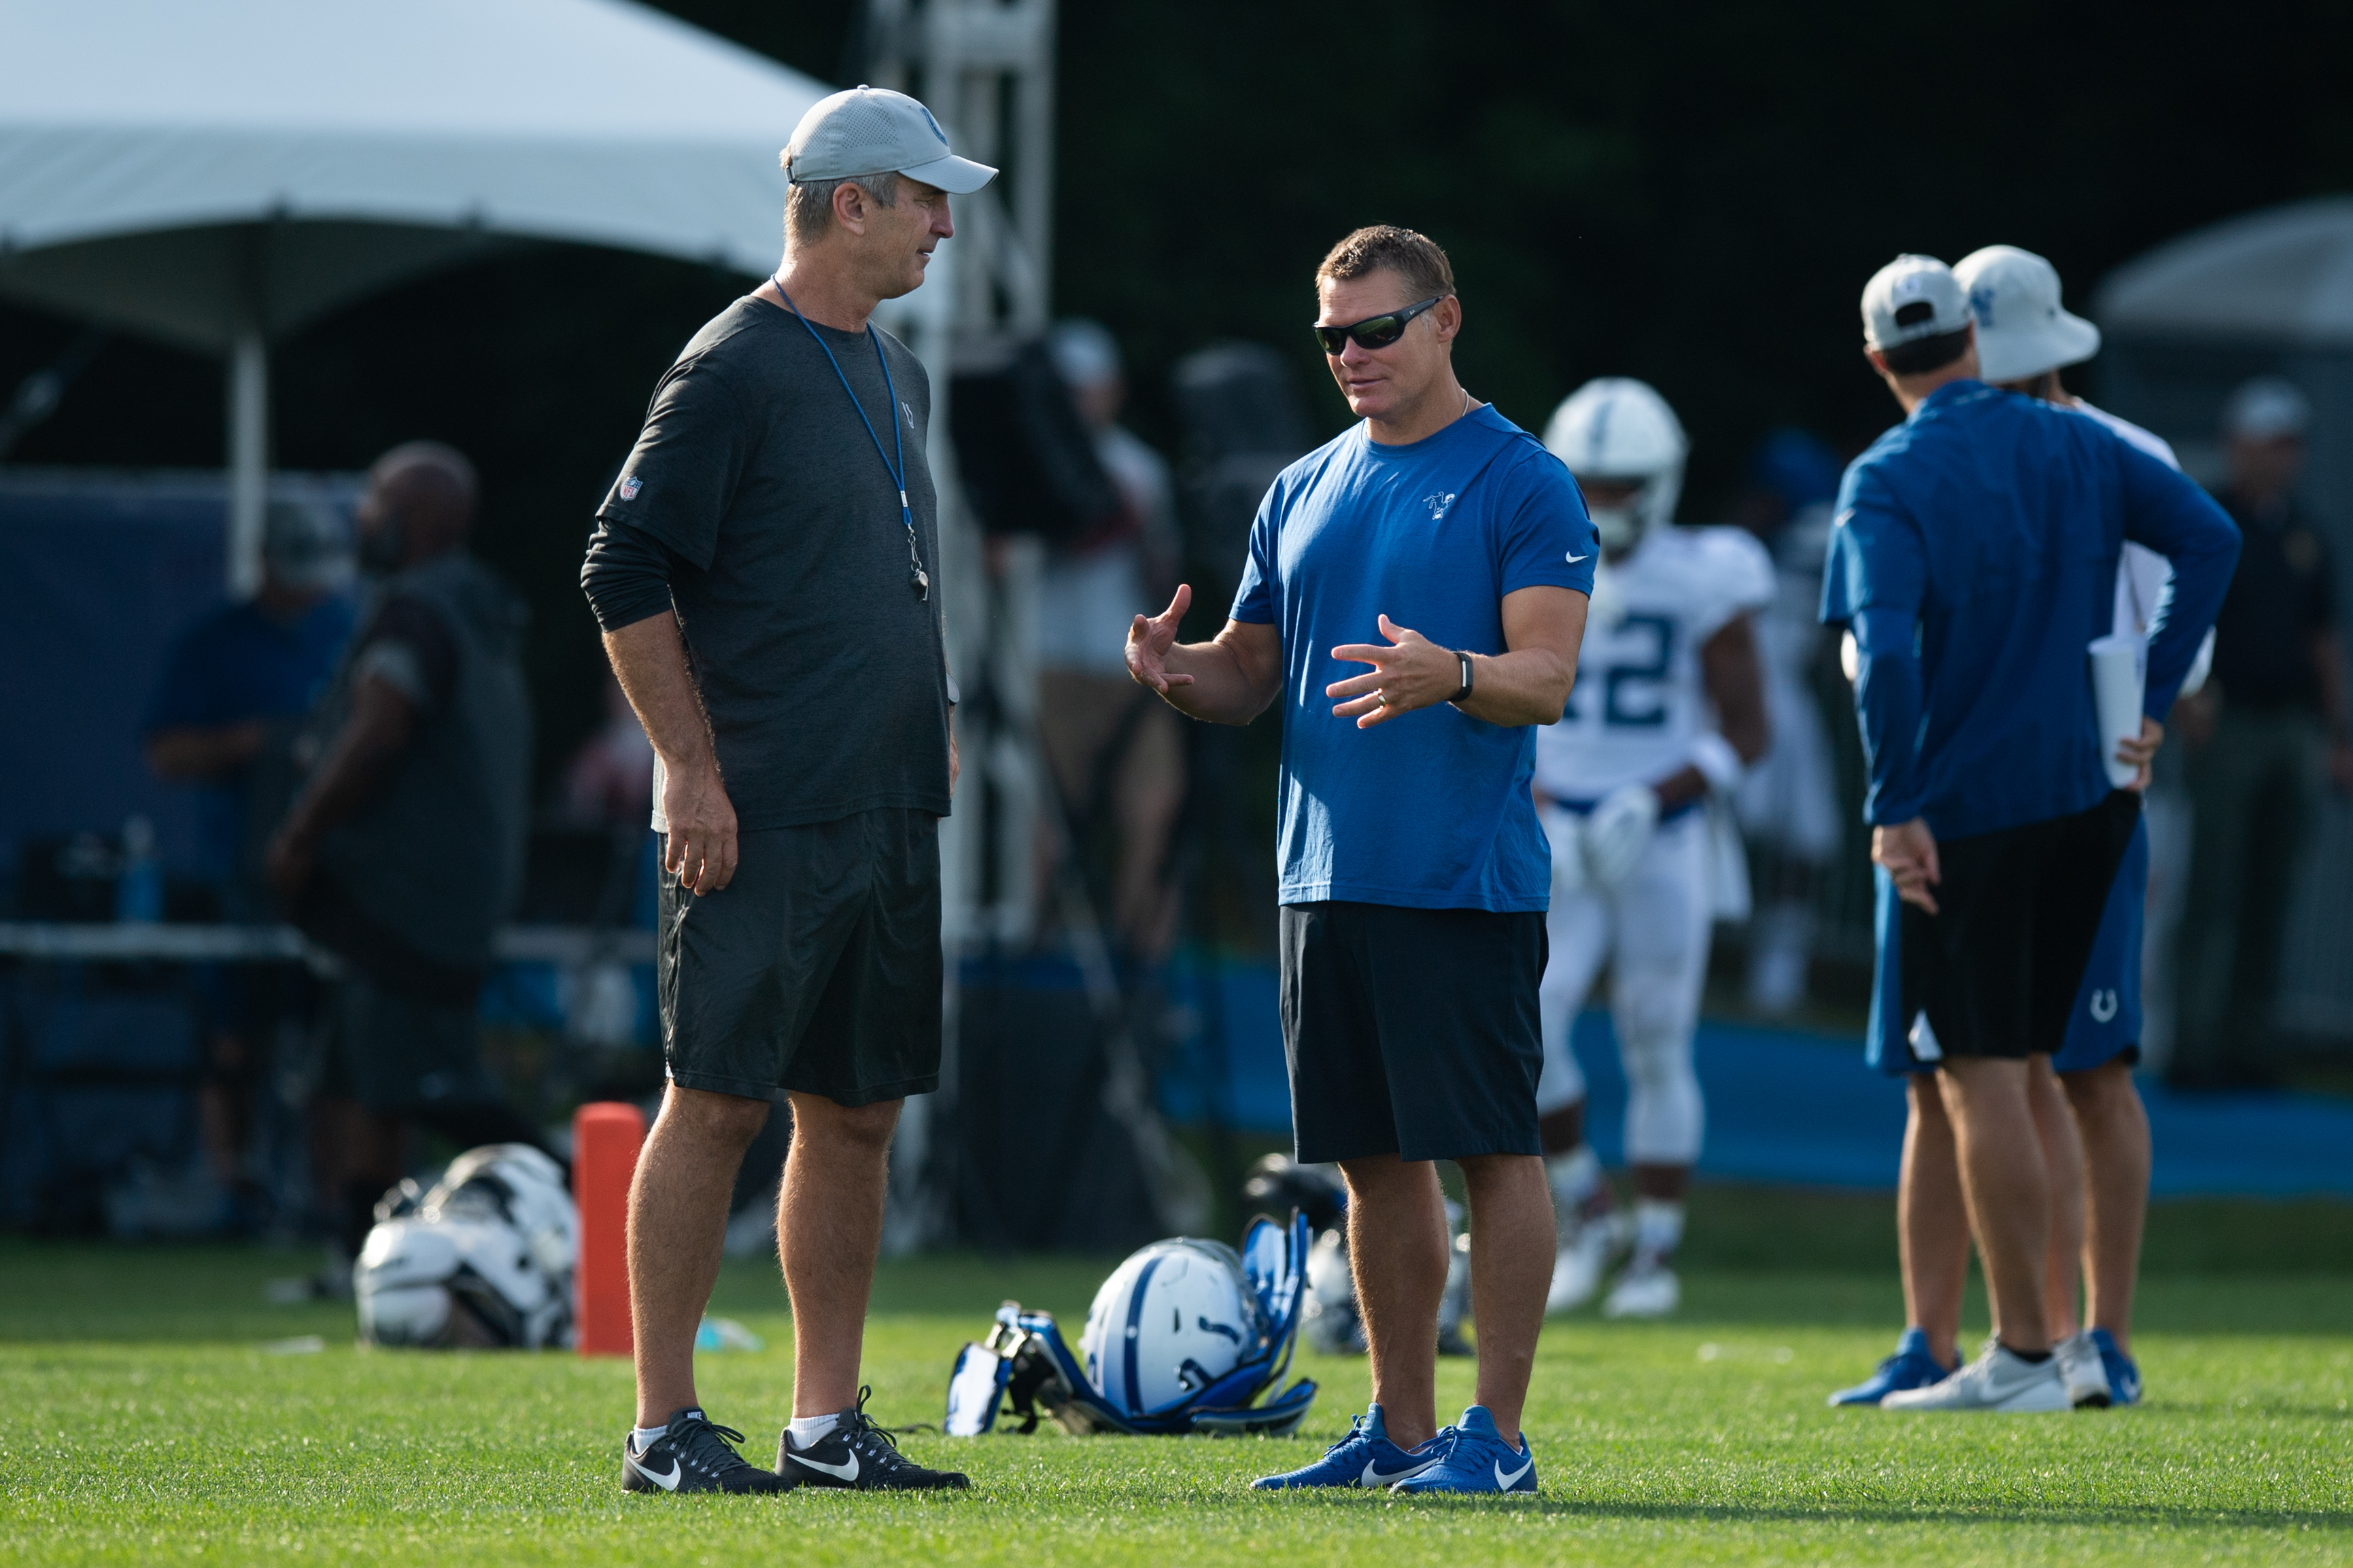 NFL: AUG 05 Colts Training Camp